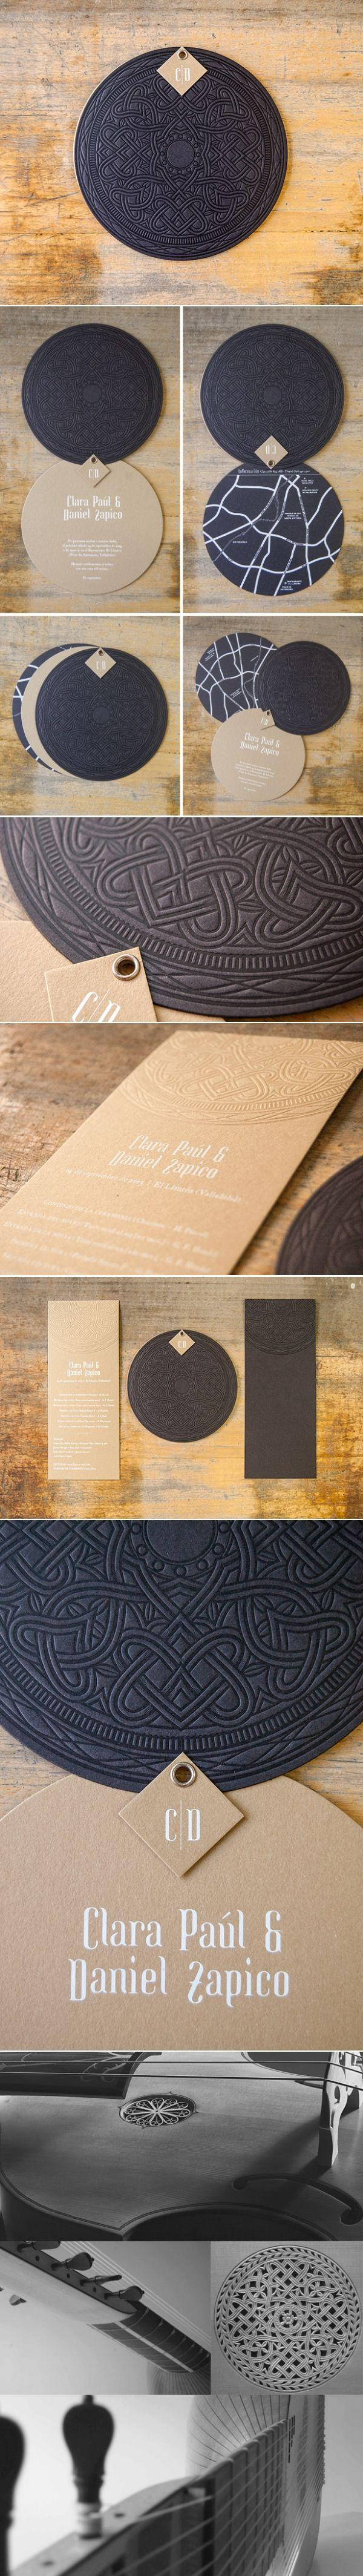 Mariage - Beautiful Business Cards & Print Designs